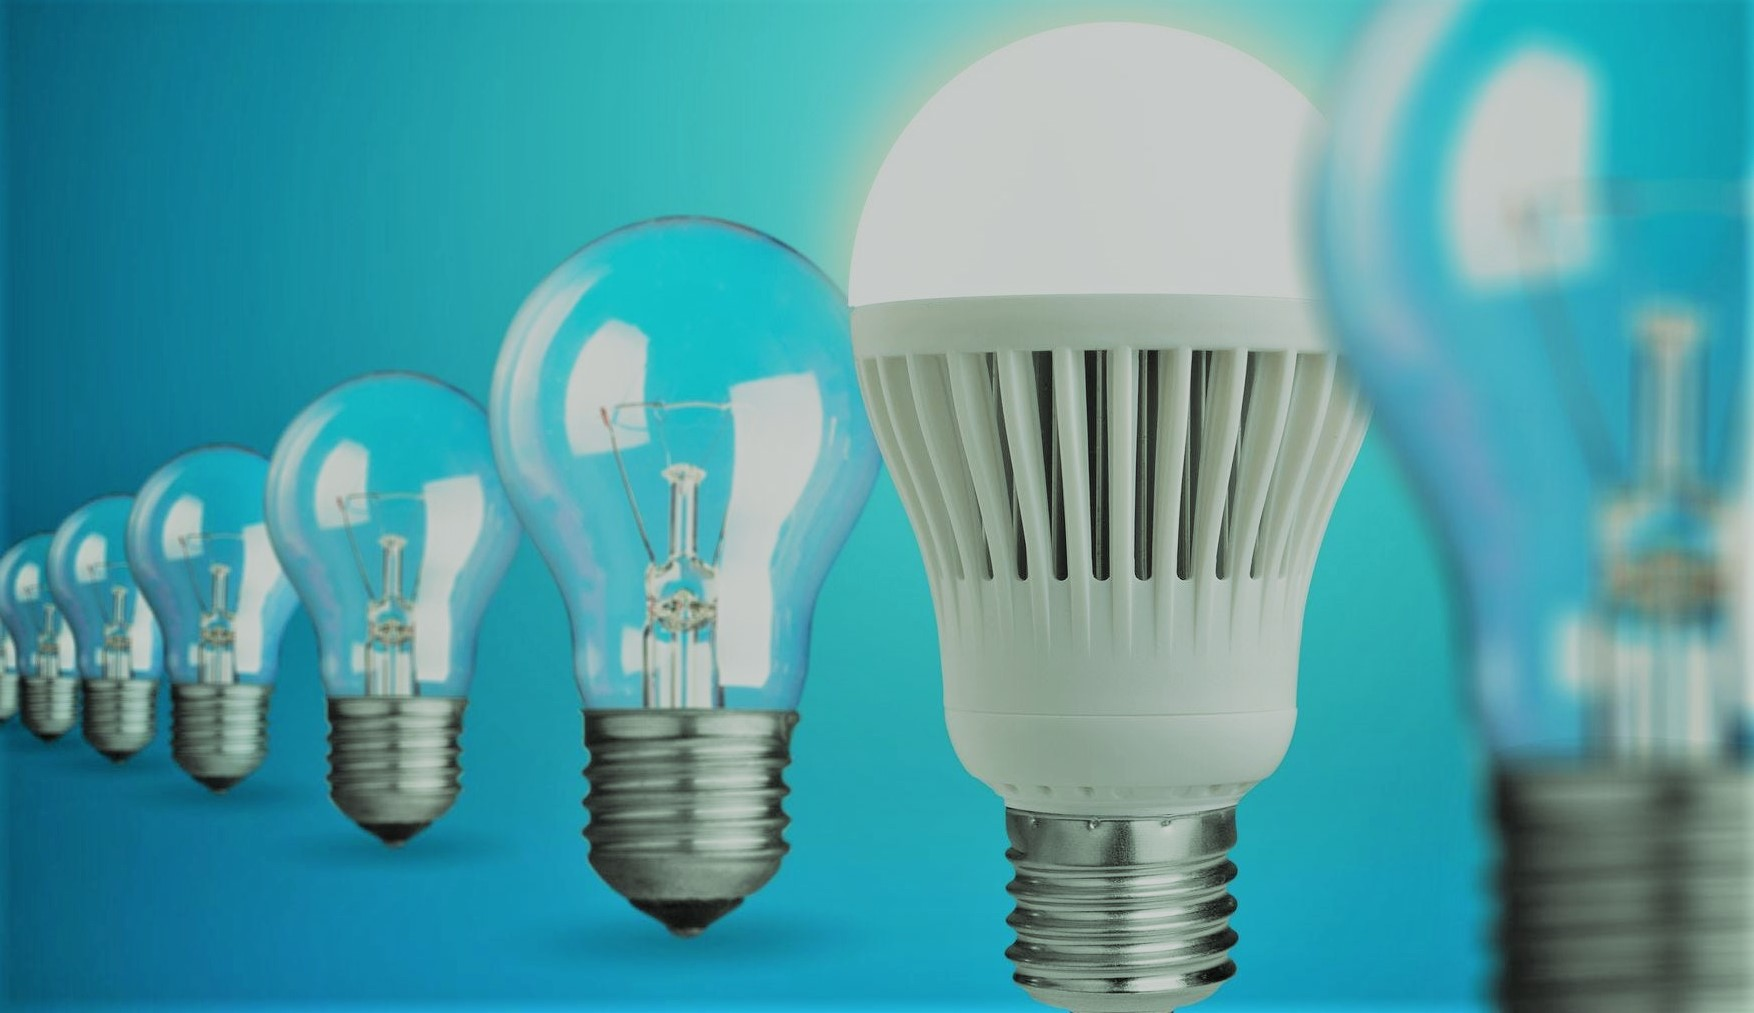 Led light efficiency